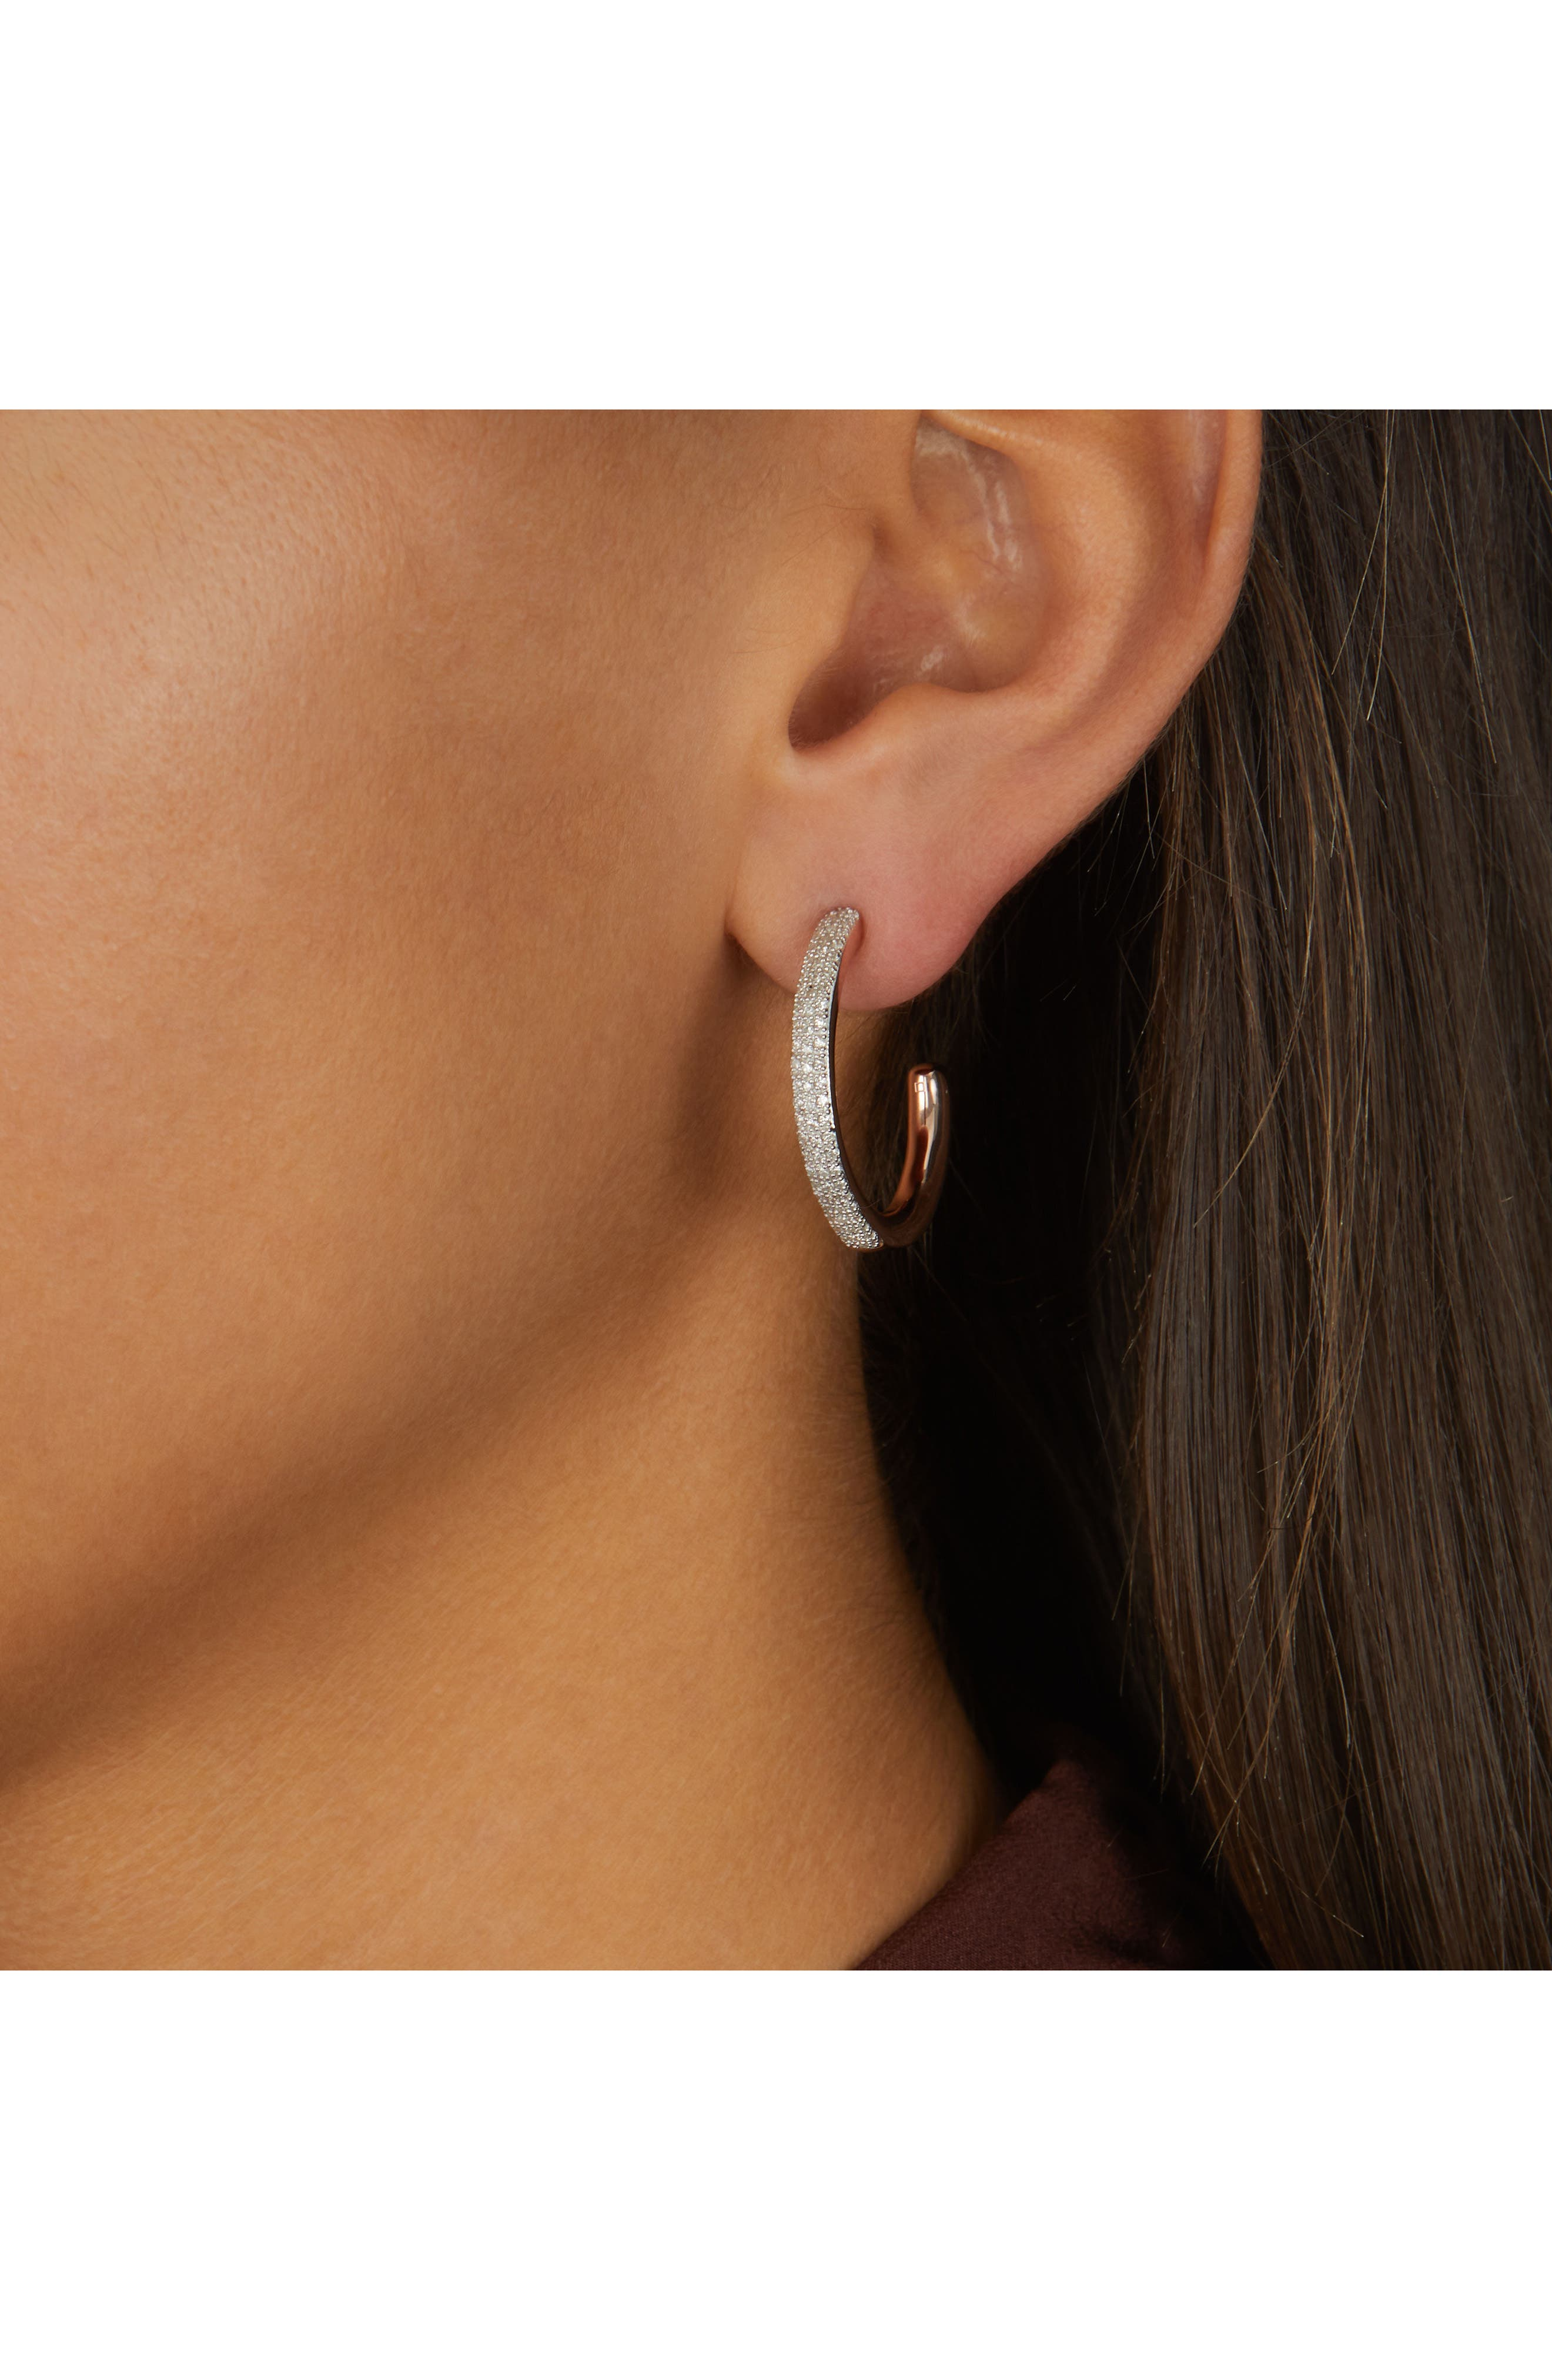 Fiji Large Diamond Hoop Earrings,                             Alternate thumbnail 2, color,                             Rose Gold